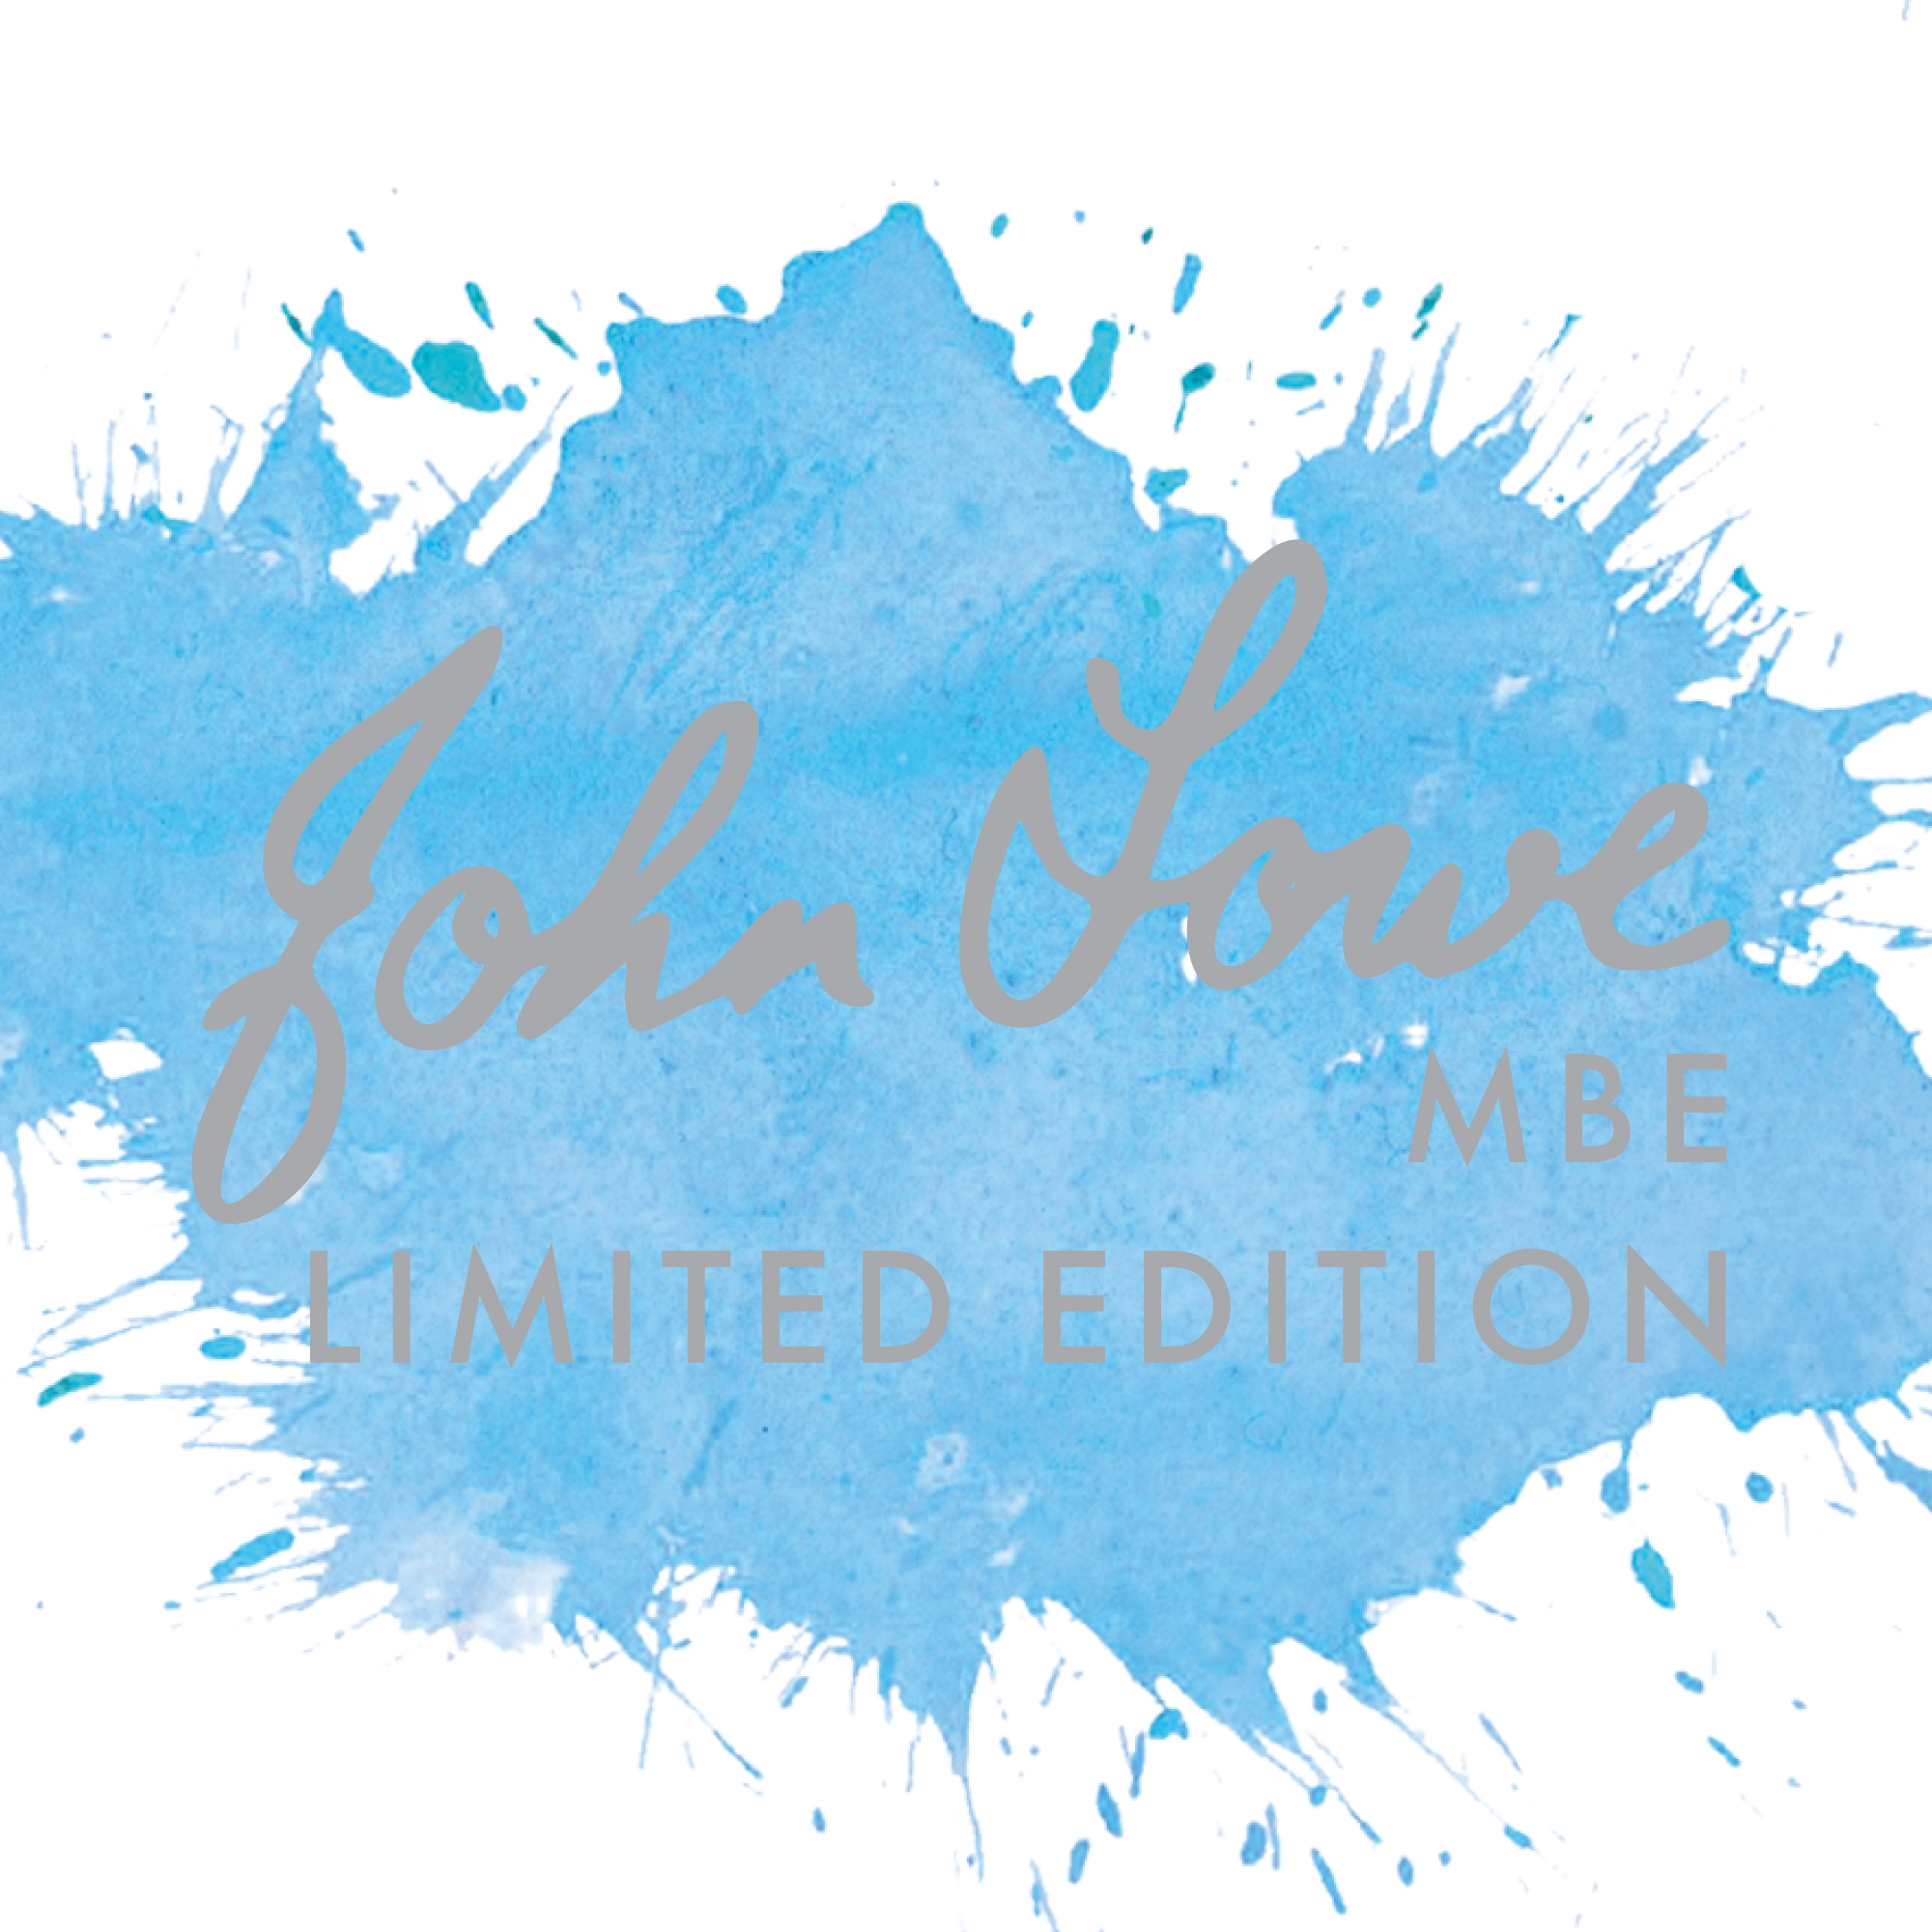 John Lowe MBE Limited Edition